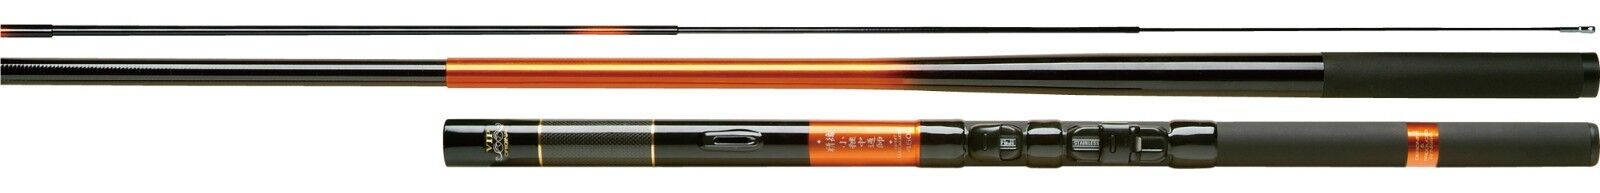 NISSIN SEIKON KOTSUGI NAKATOHSHI Telescopic Interline Japanese Stream Rod Tenkar